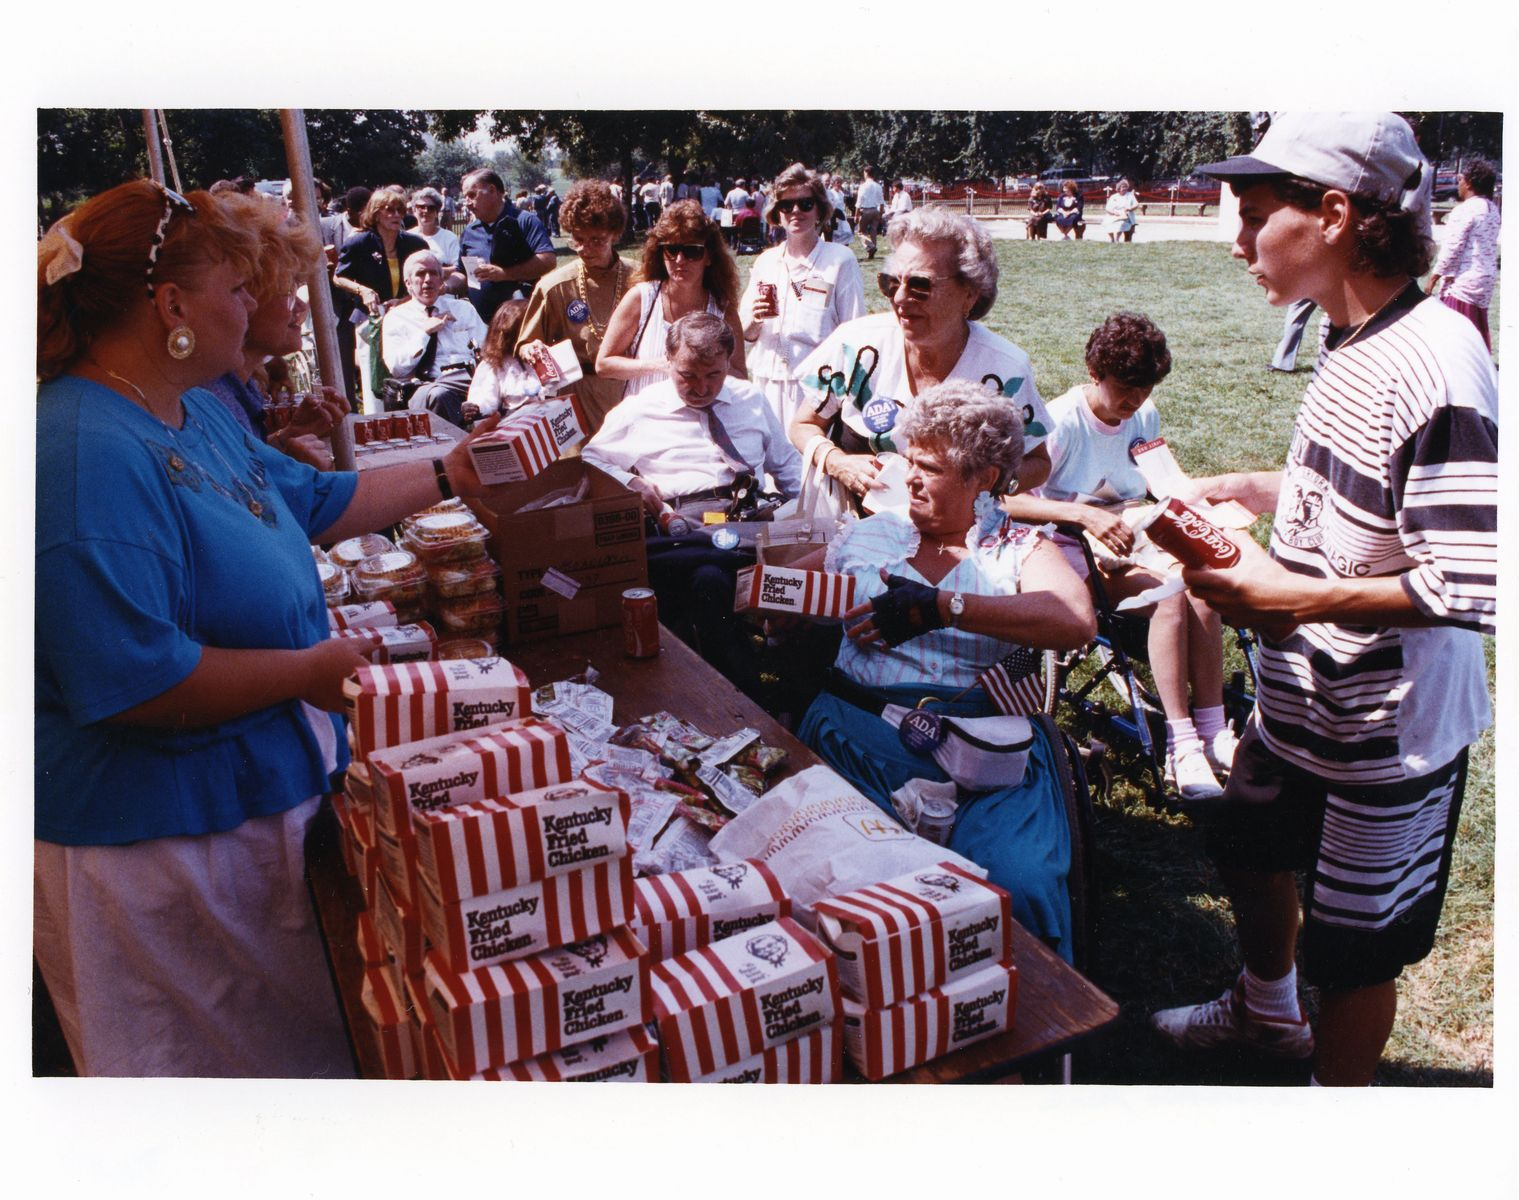 Monica Hall, ECNV staff, handing out lunch boxes to people at the picnic